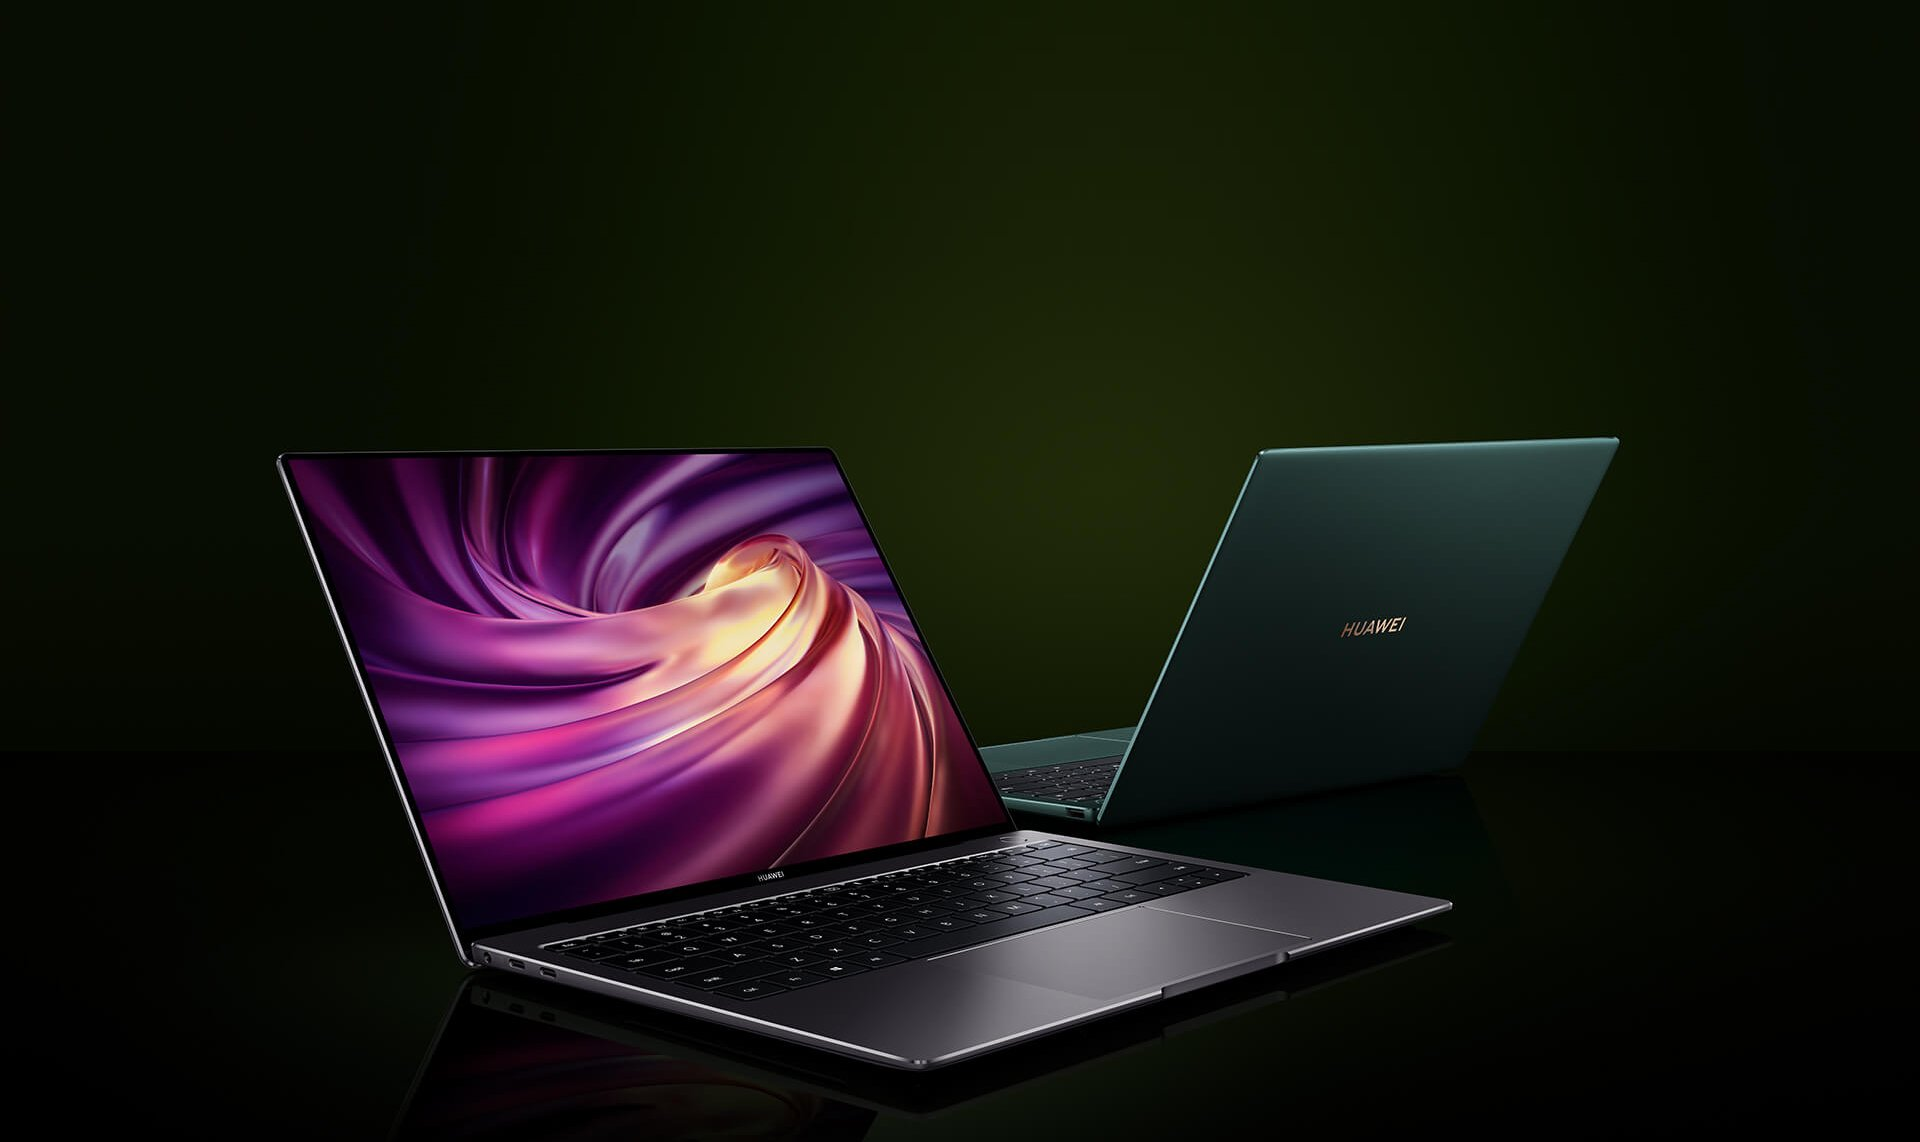 Huawei launches 2020 edition of MateBook X Pro, MateBook 13, and MateBook D 15 in Canada